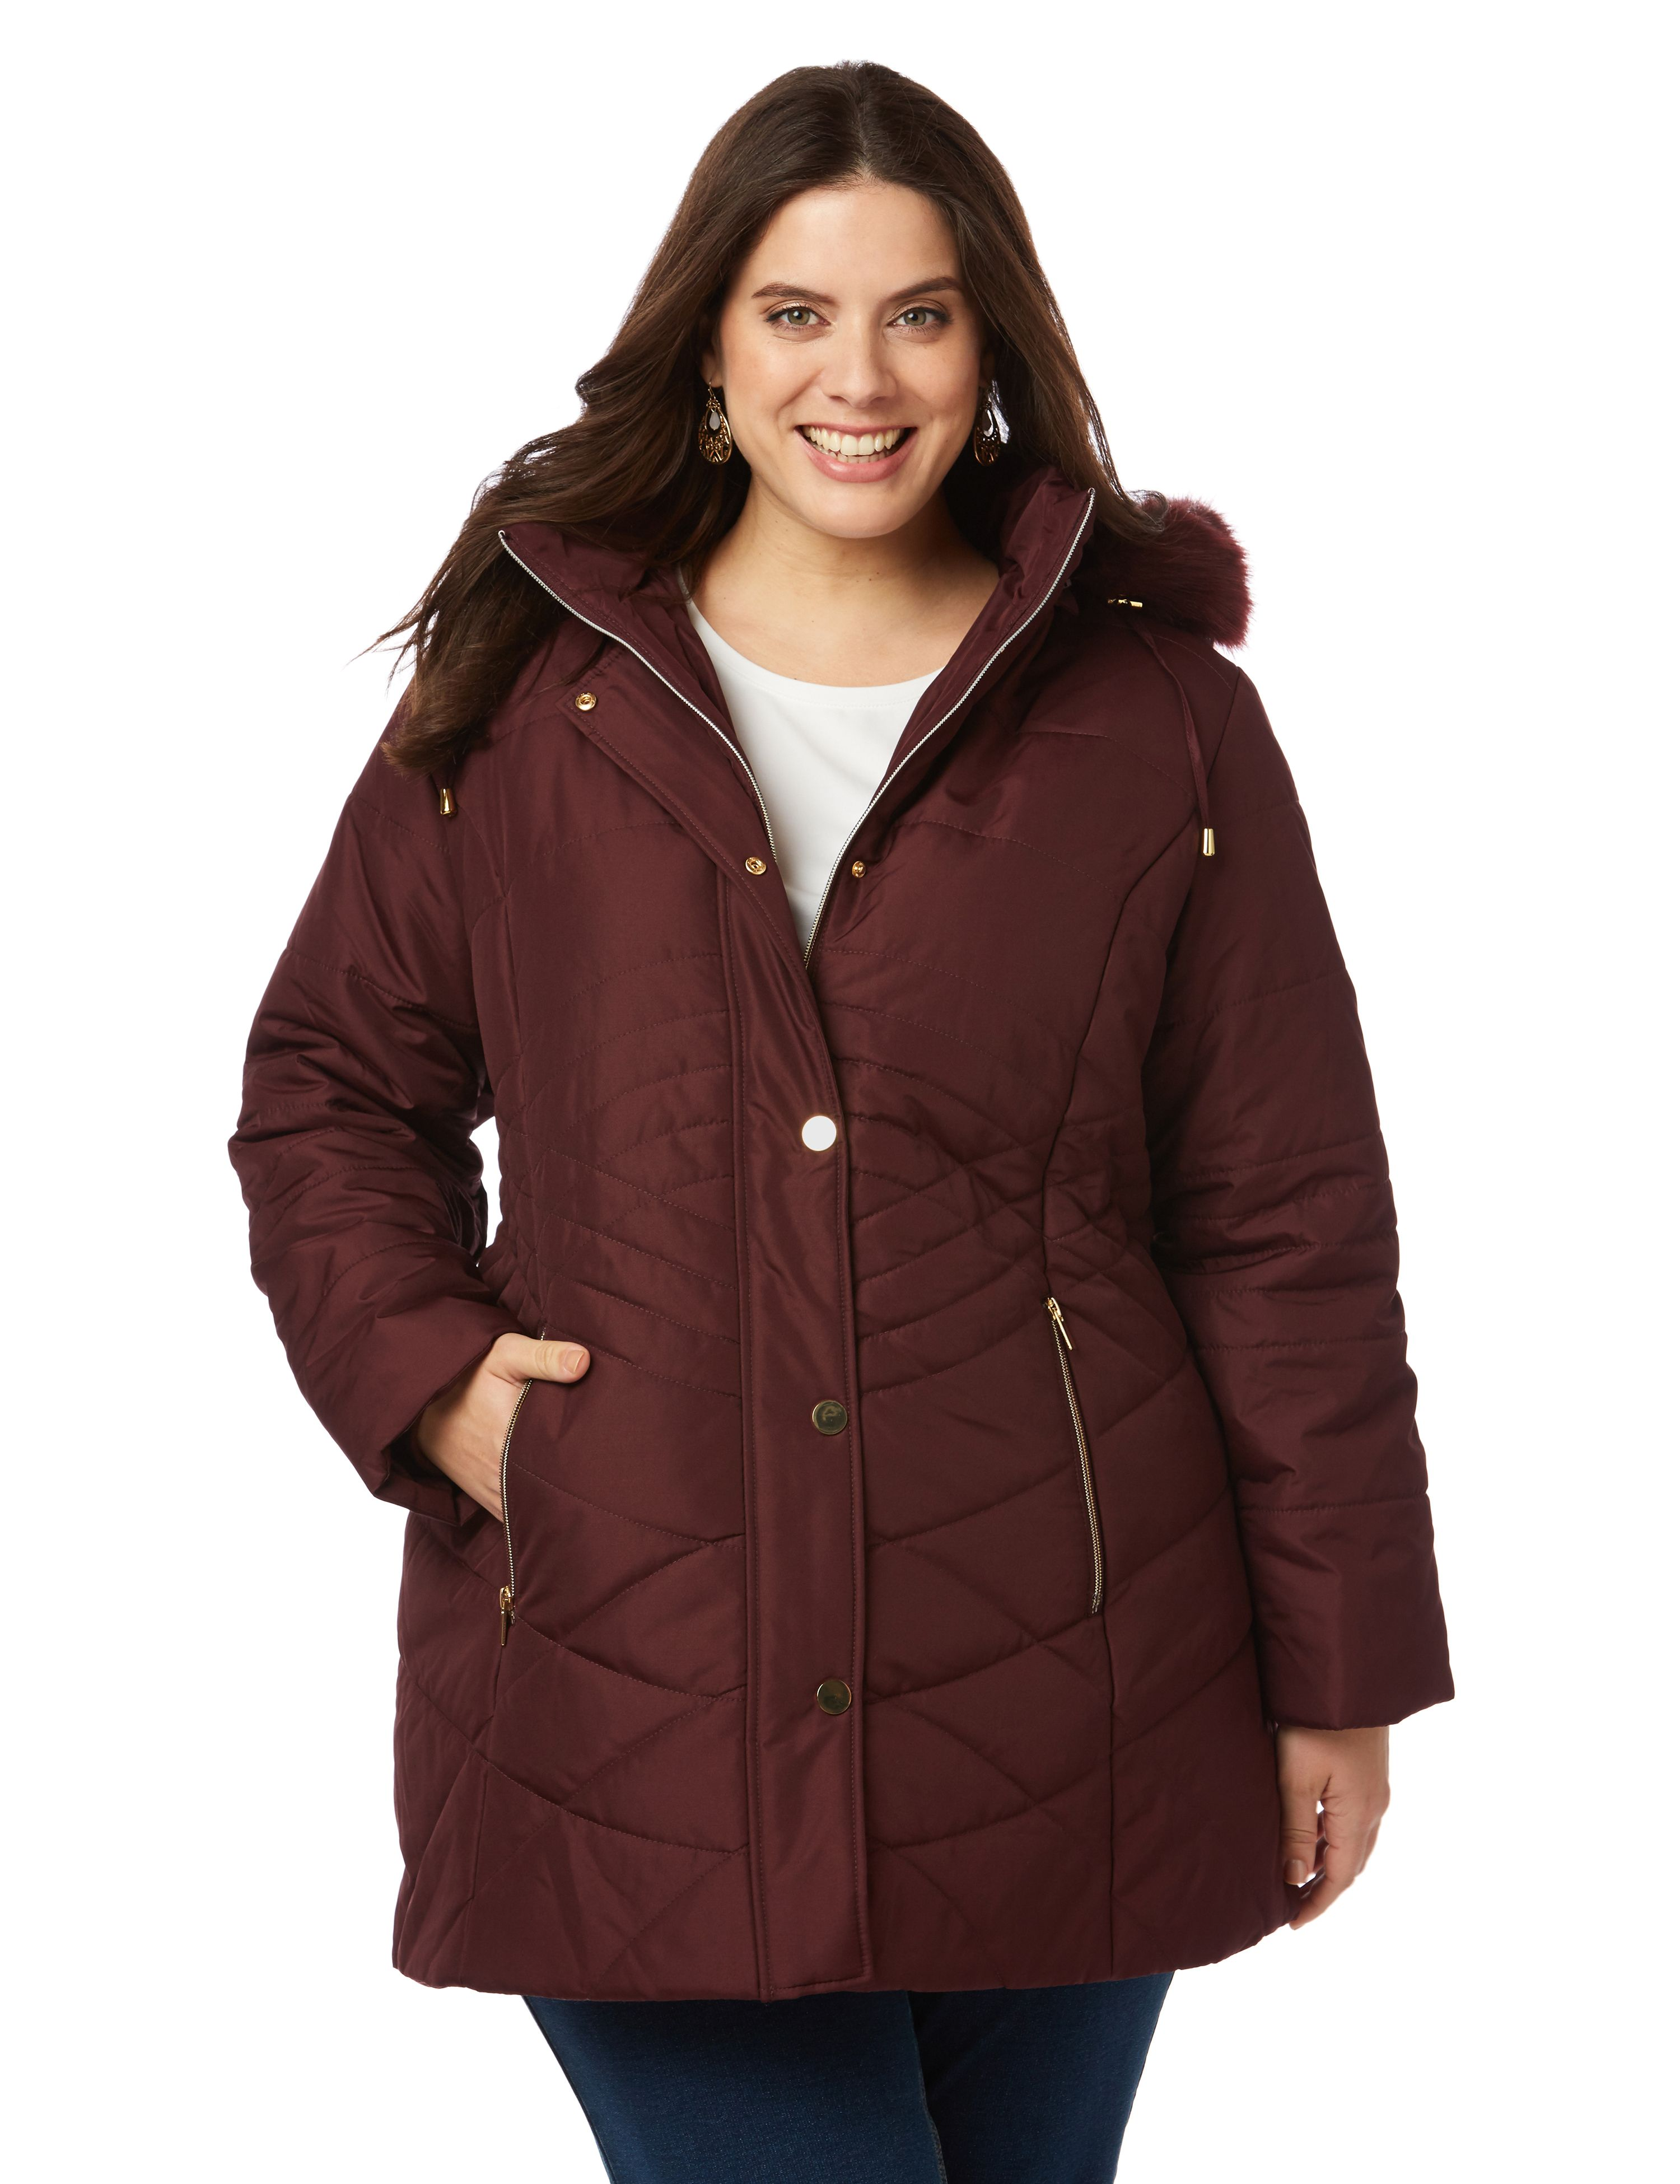 Plus Size Women's Coats & Outerwear | Catherines